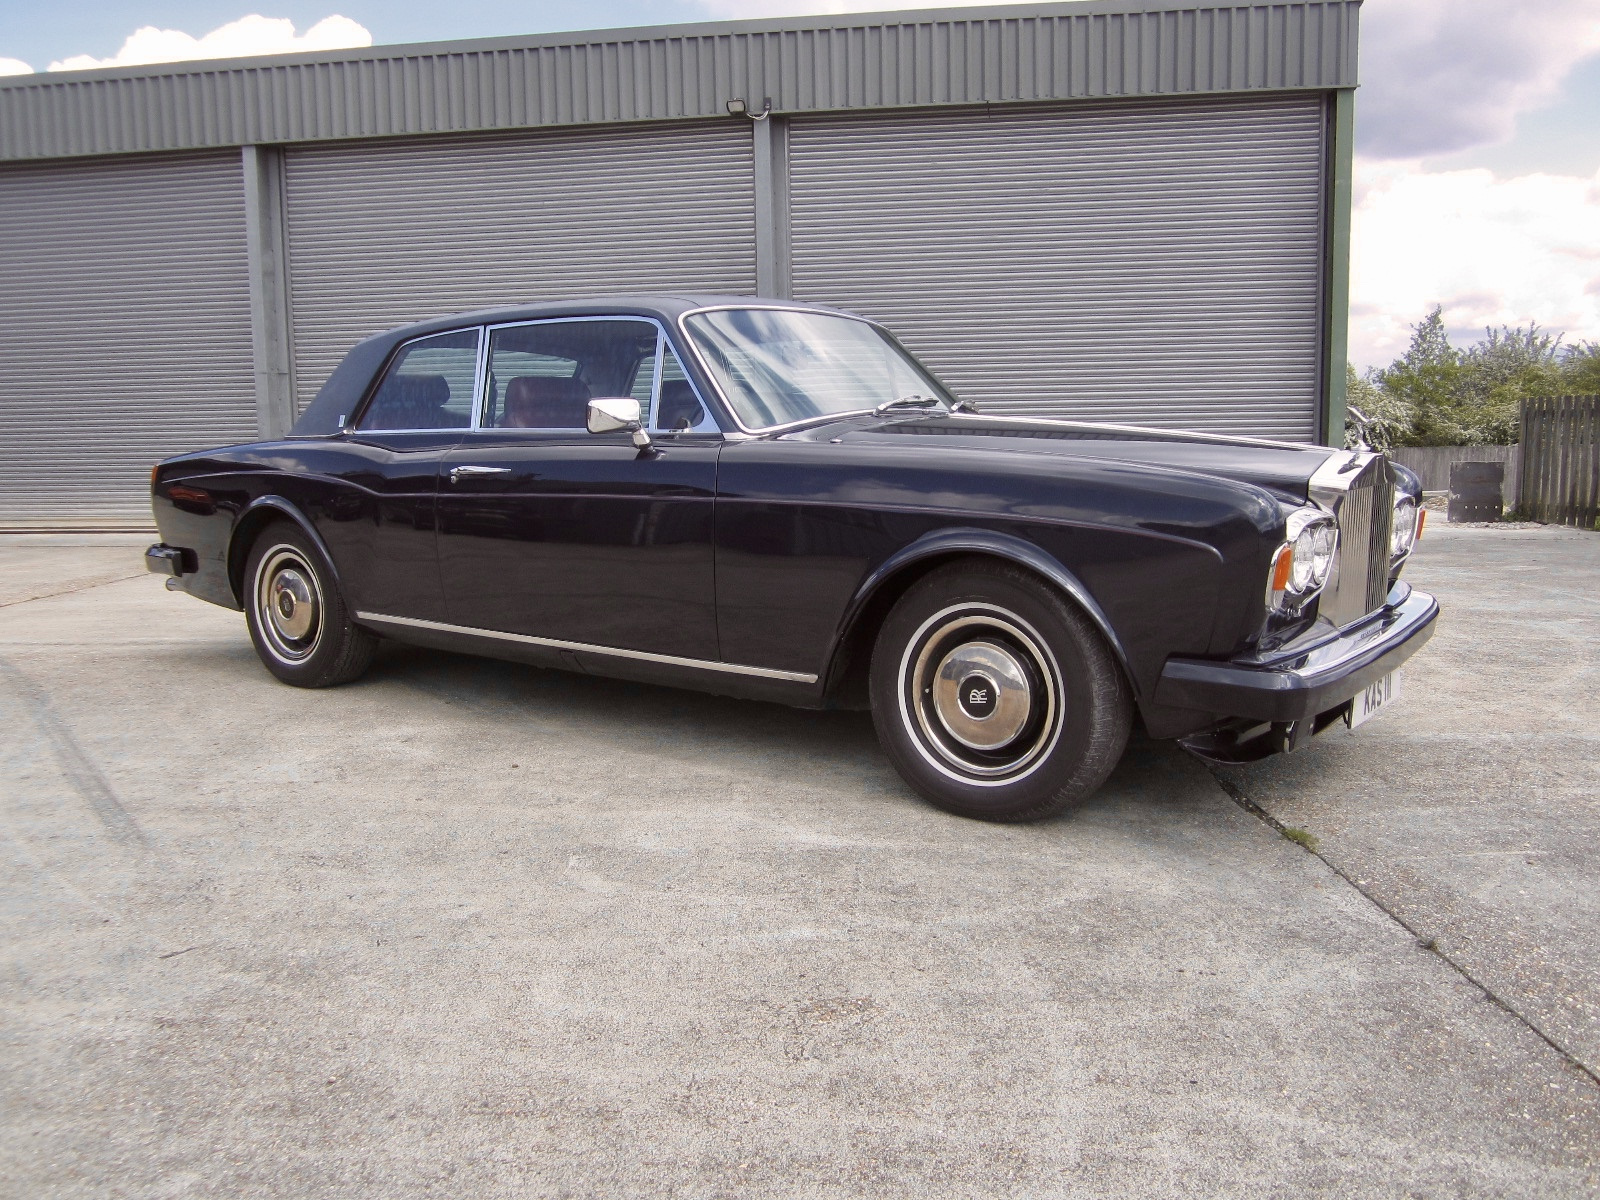 1984 Rolls Royce Corniche I Vintage Car For Sale